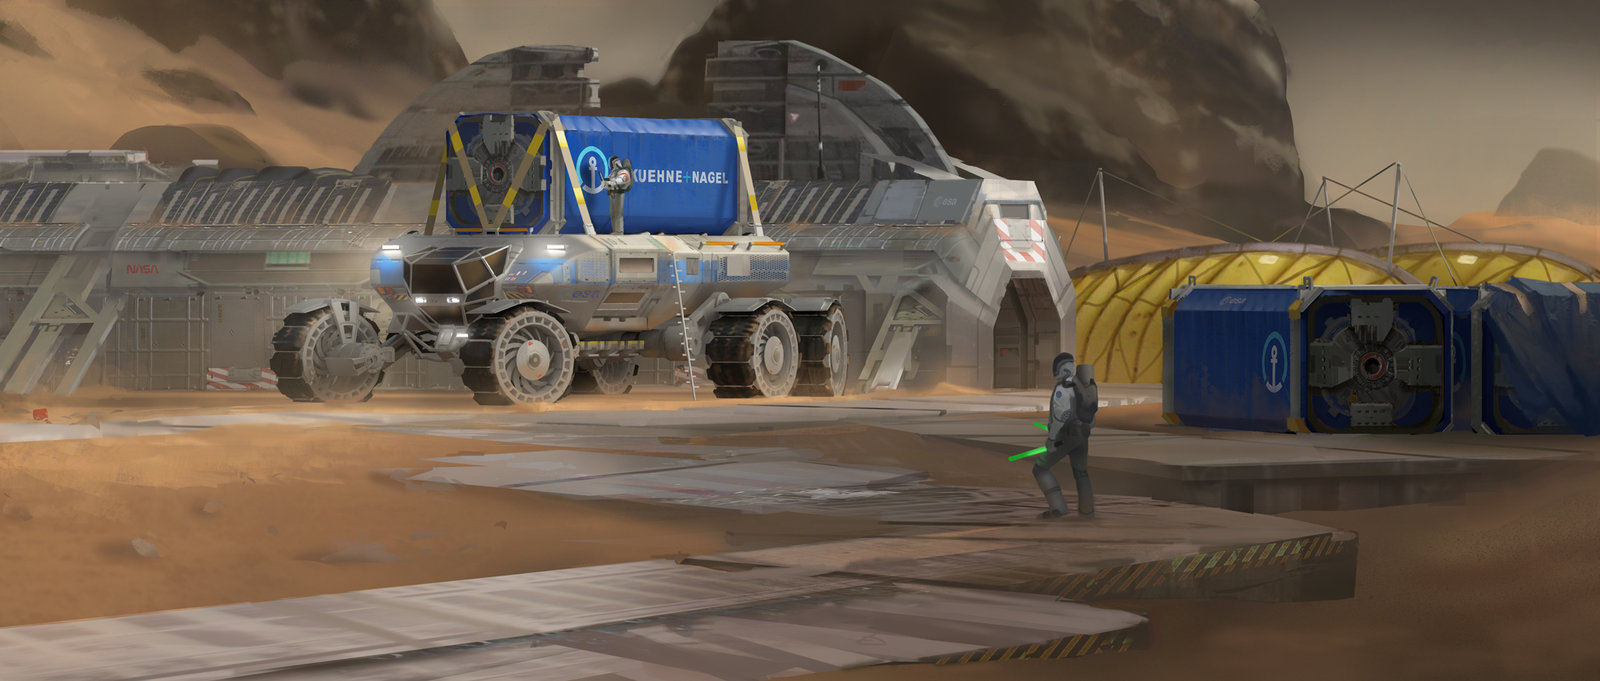 Heavy Mars Vehicle - Containers